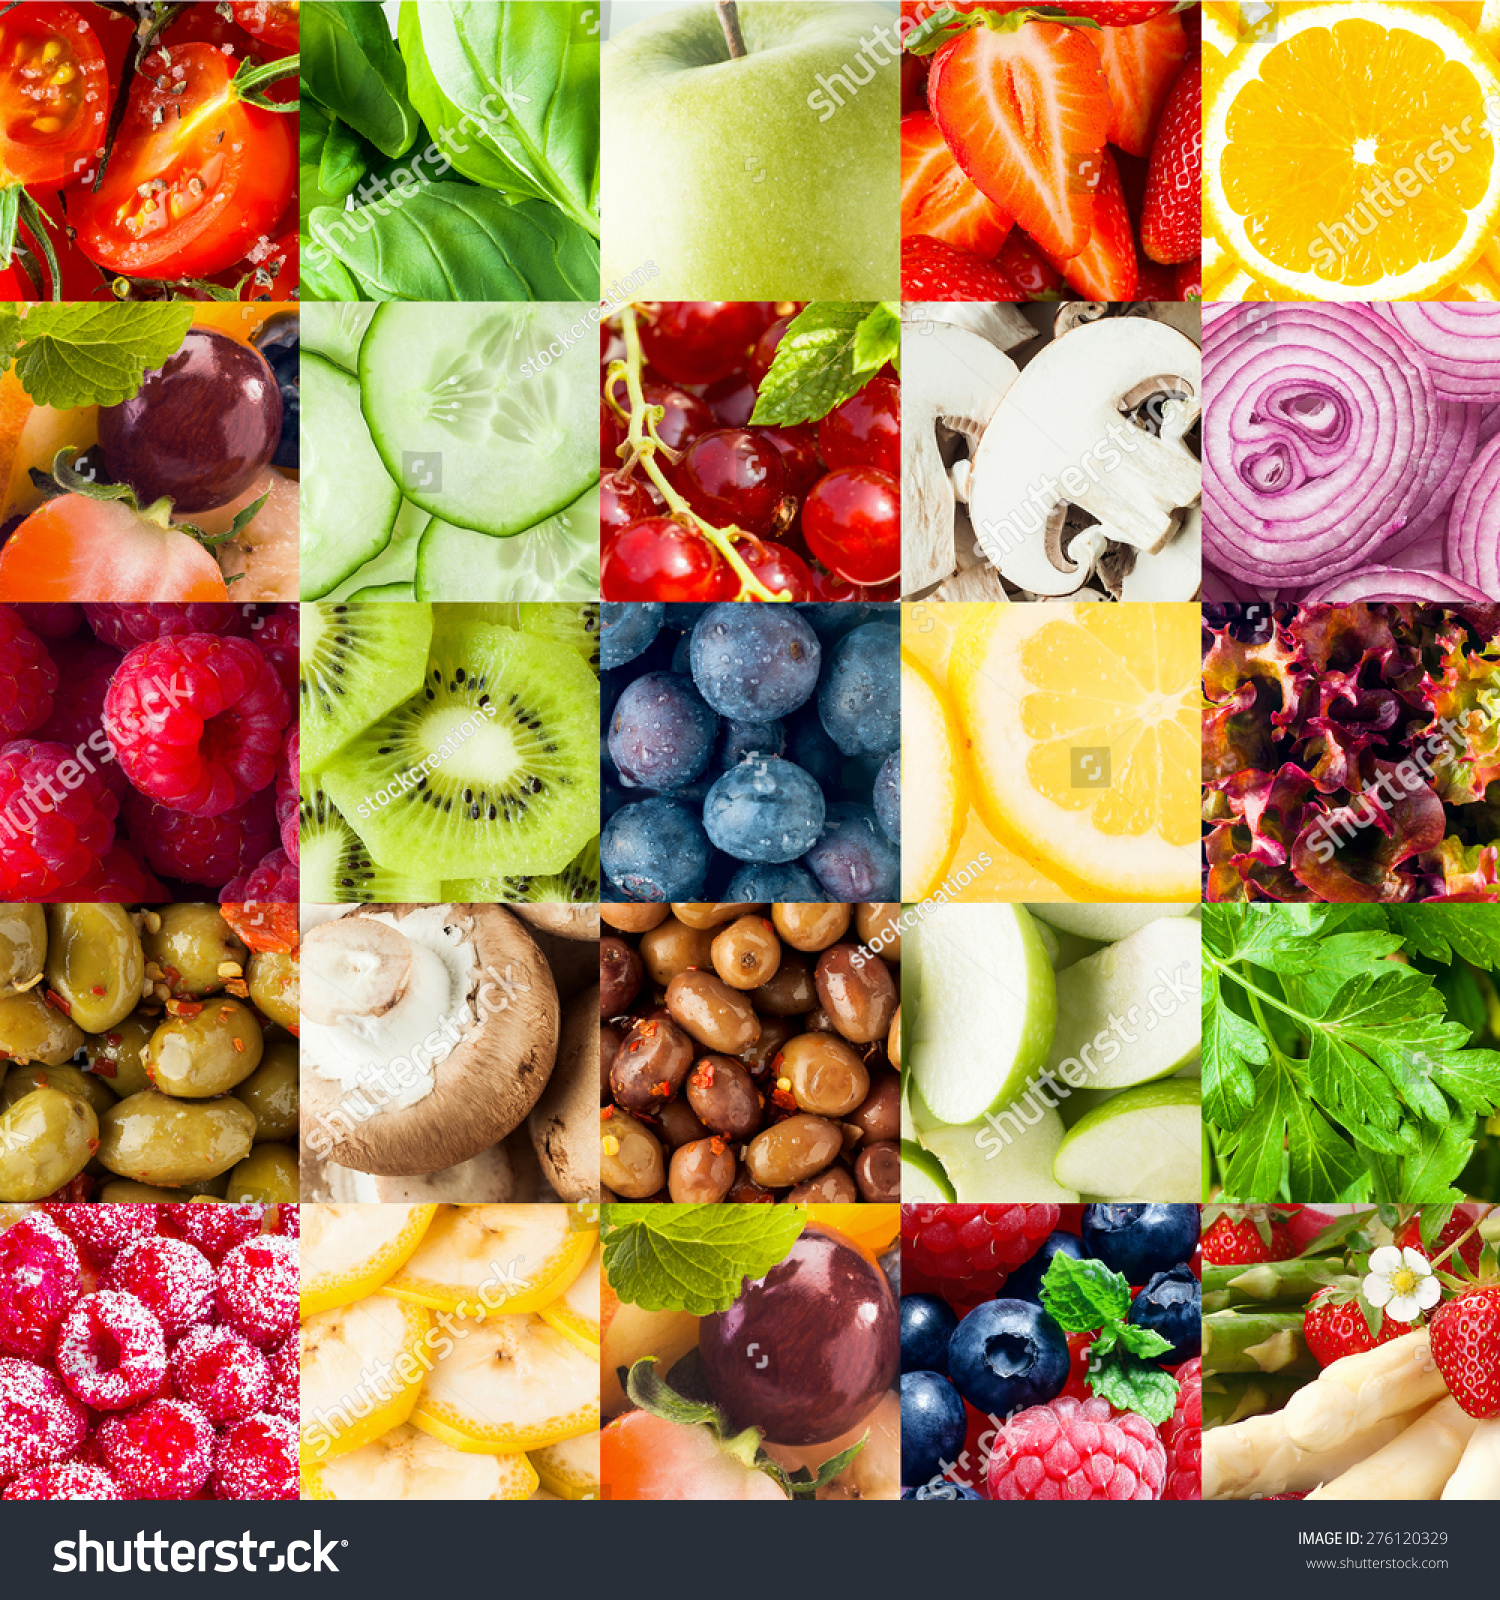 Colorful Fruit Vegetable Collage Food Background Stock ...